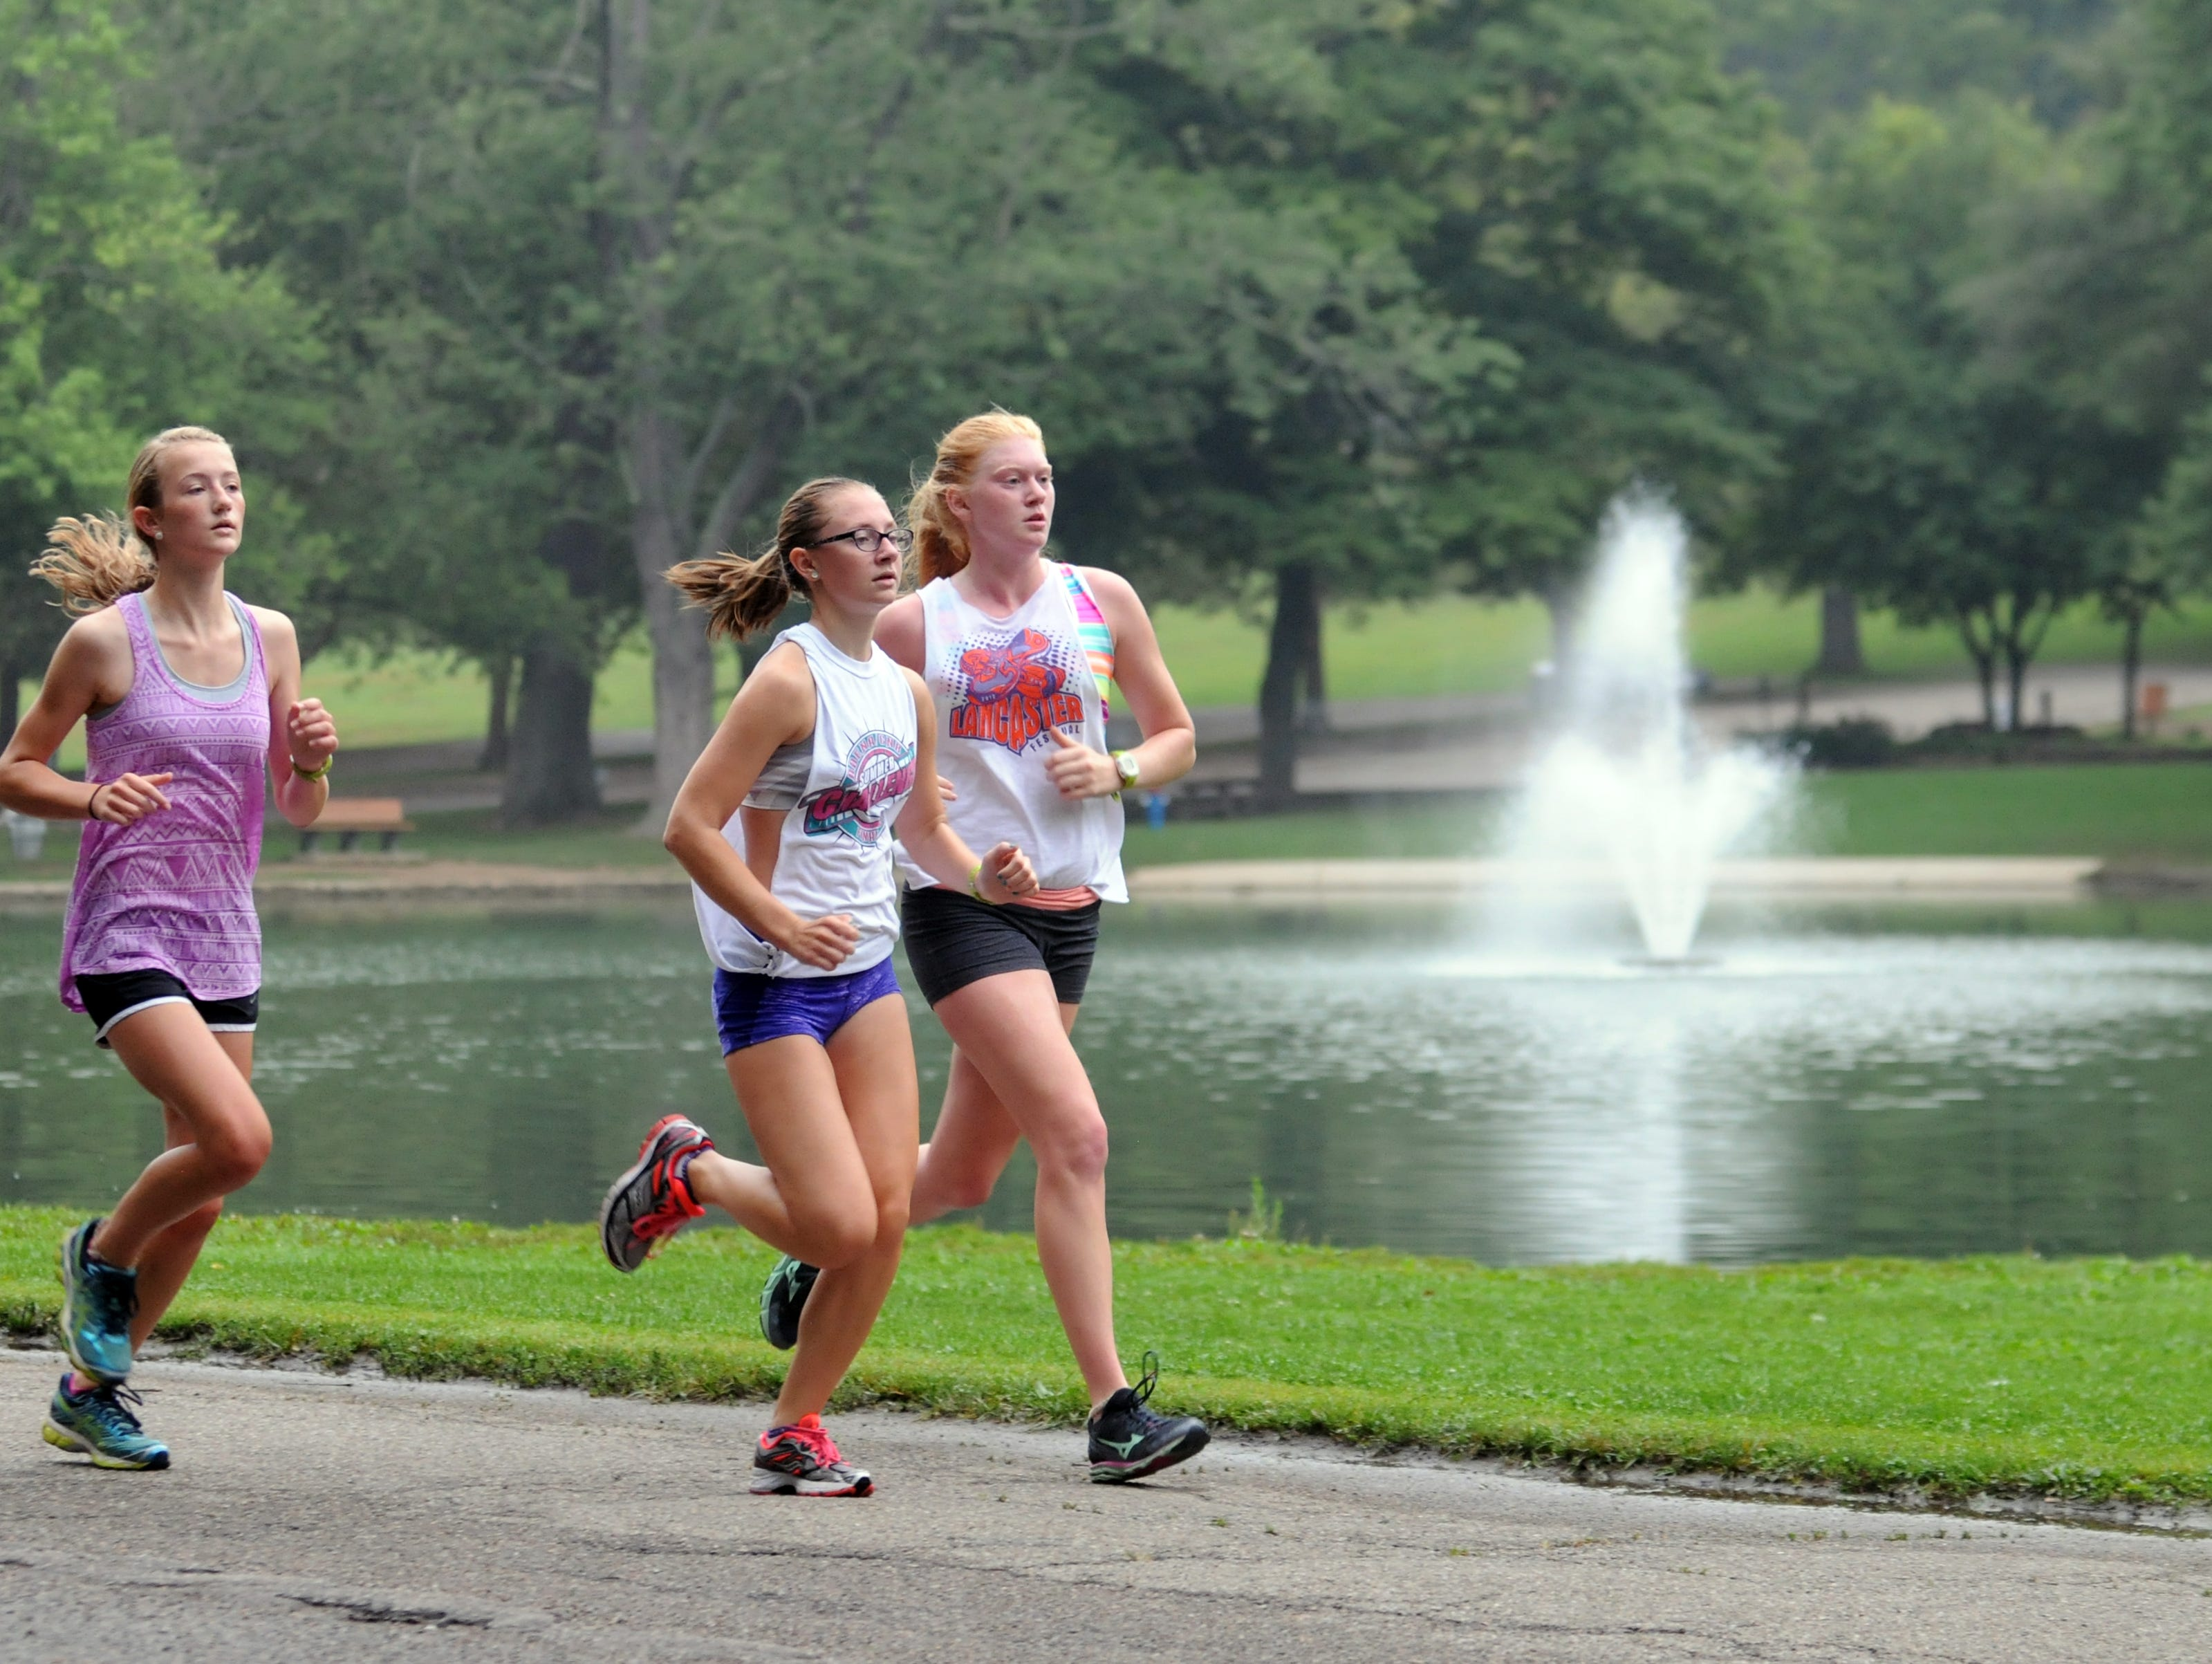 Claire McCandlish, left, Emily Johnson, center, and Heather Walker run together during practice Aug. 12 at Rising Park in Lancaster.